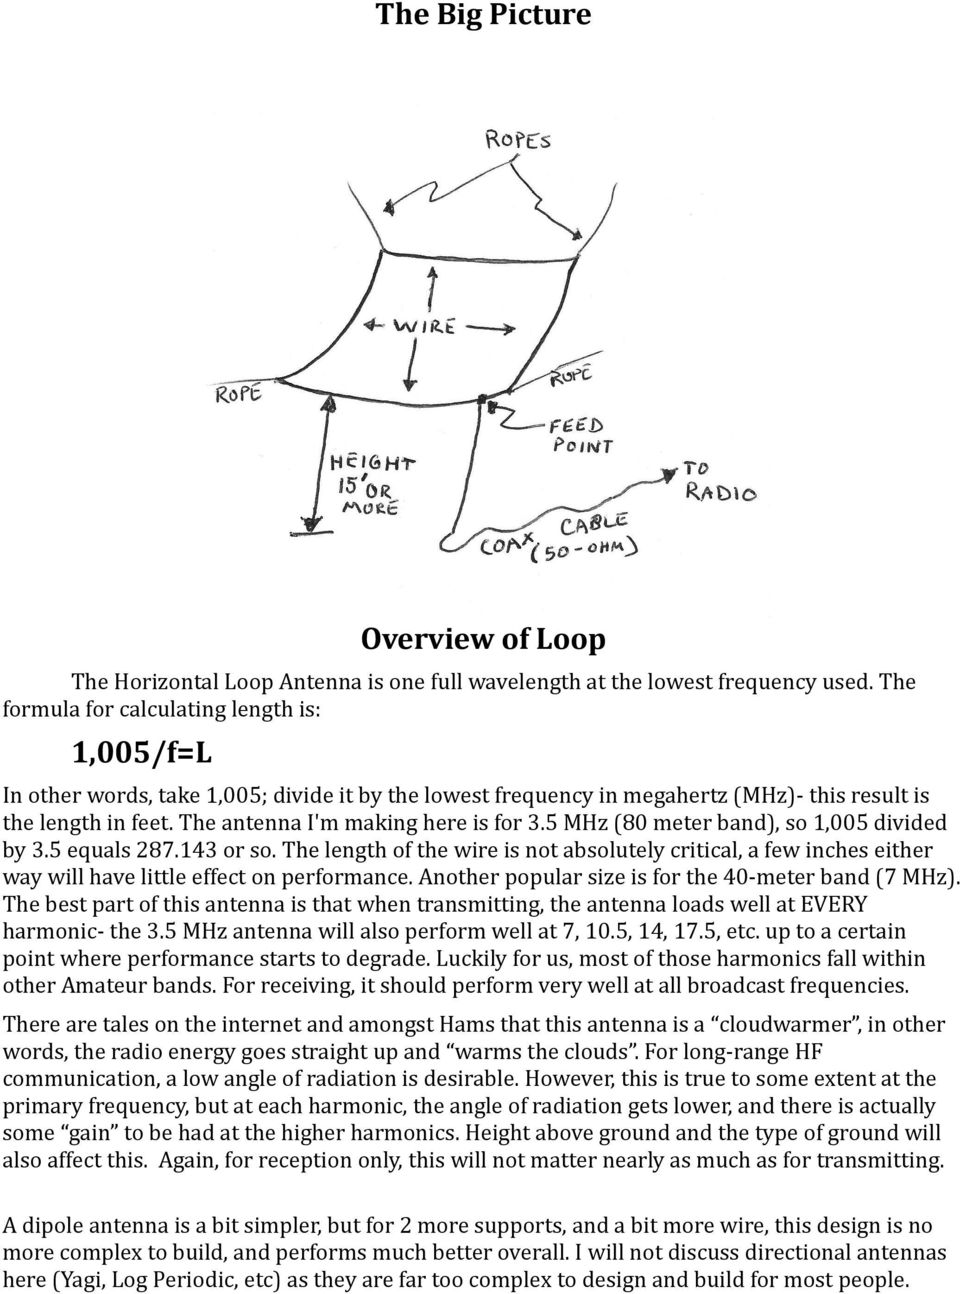 A Horizontal Loop Antenna for Shortwave Listening and Amateur Radio